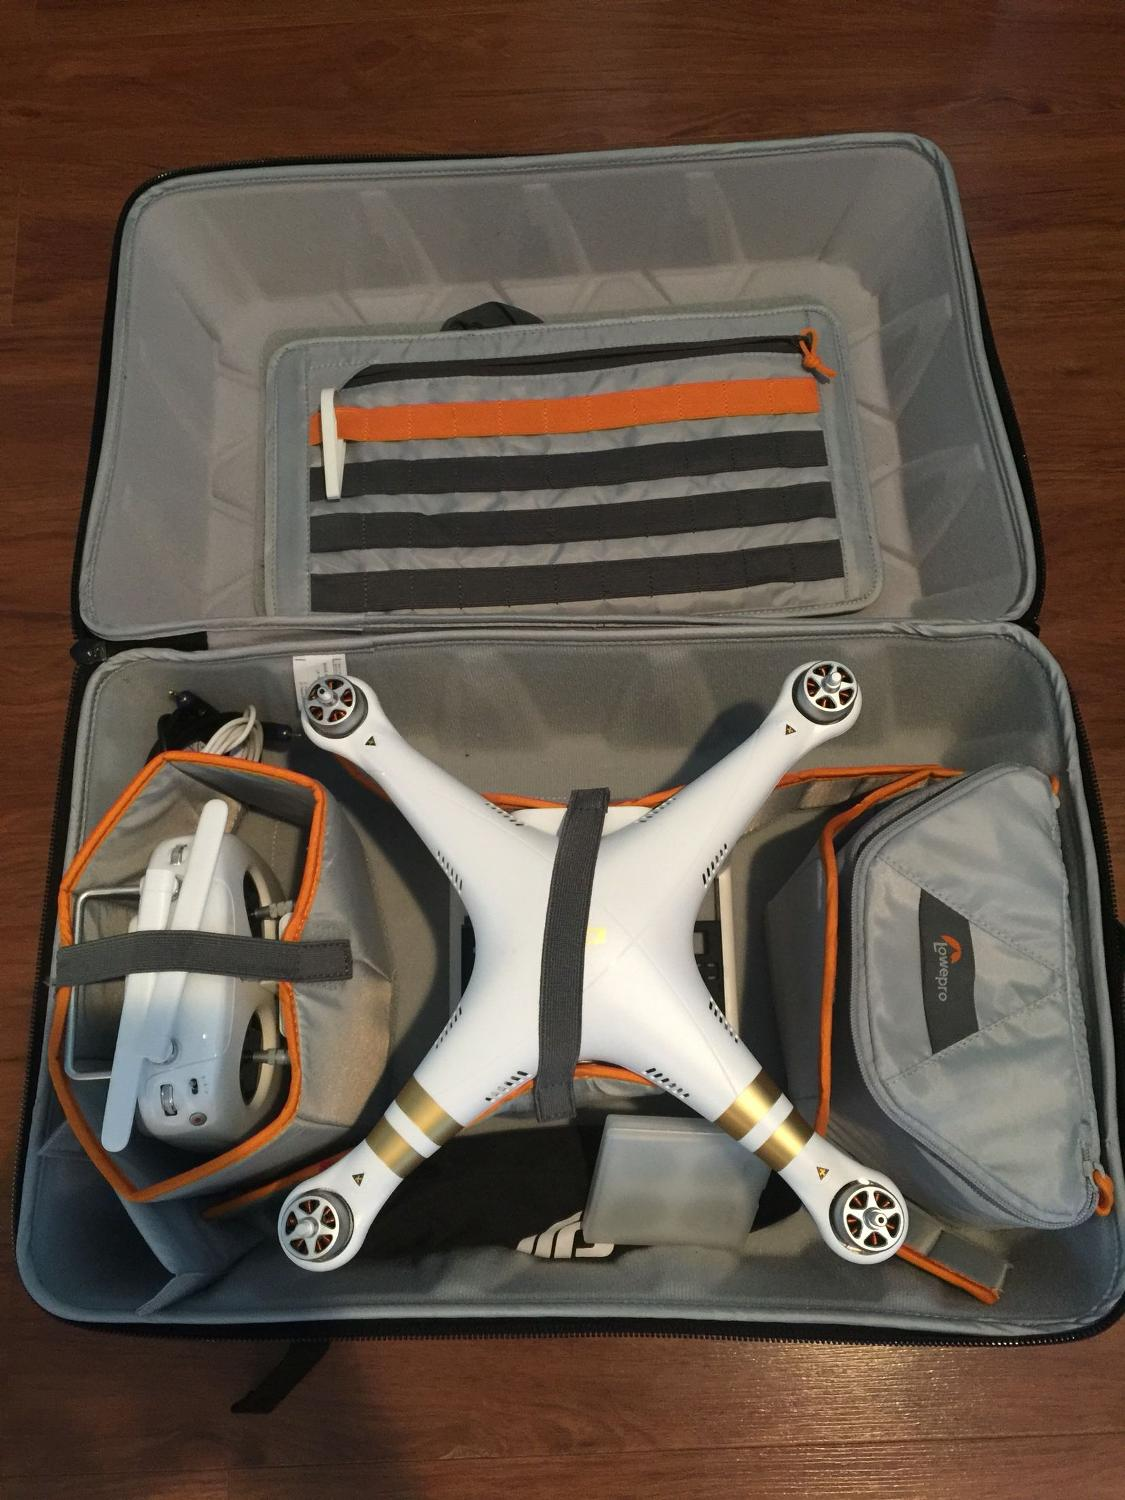 Find More Lowepro Droneguard Cs400 Drone Bag Backpack For Sale At Up Cs 400 To 90 Off